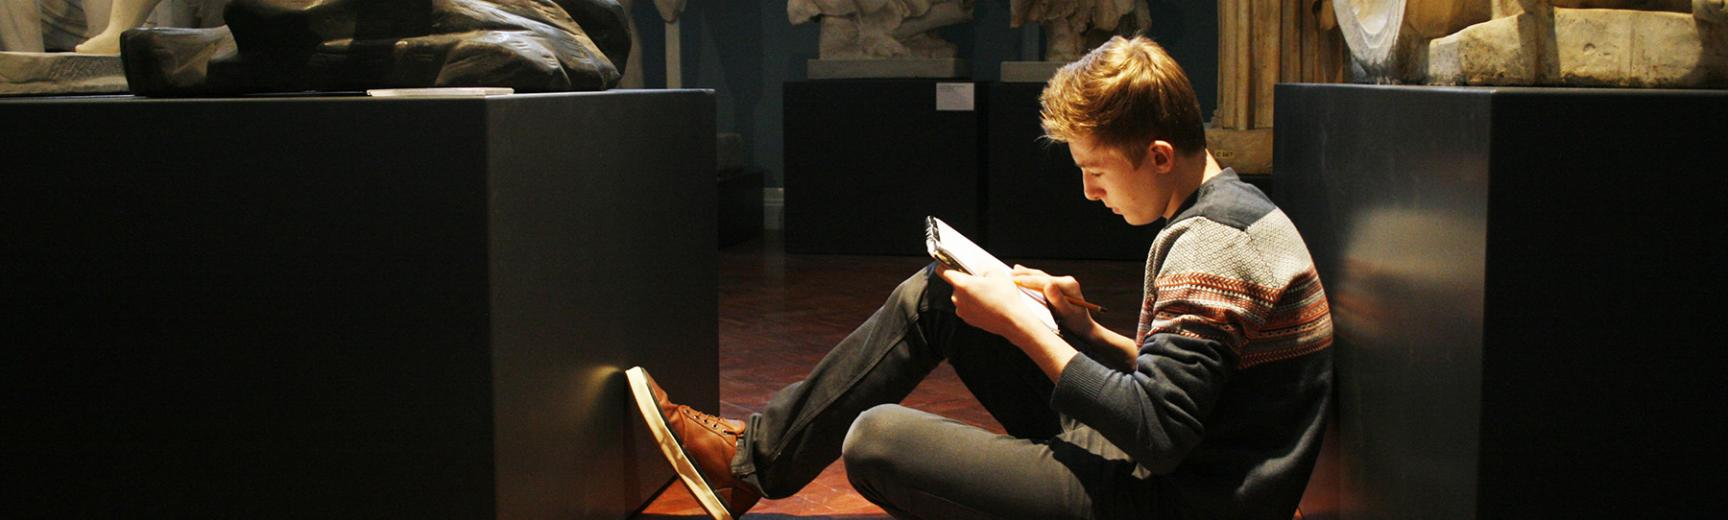 Secondary School Learning at the Ashmolean Museum